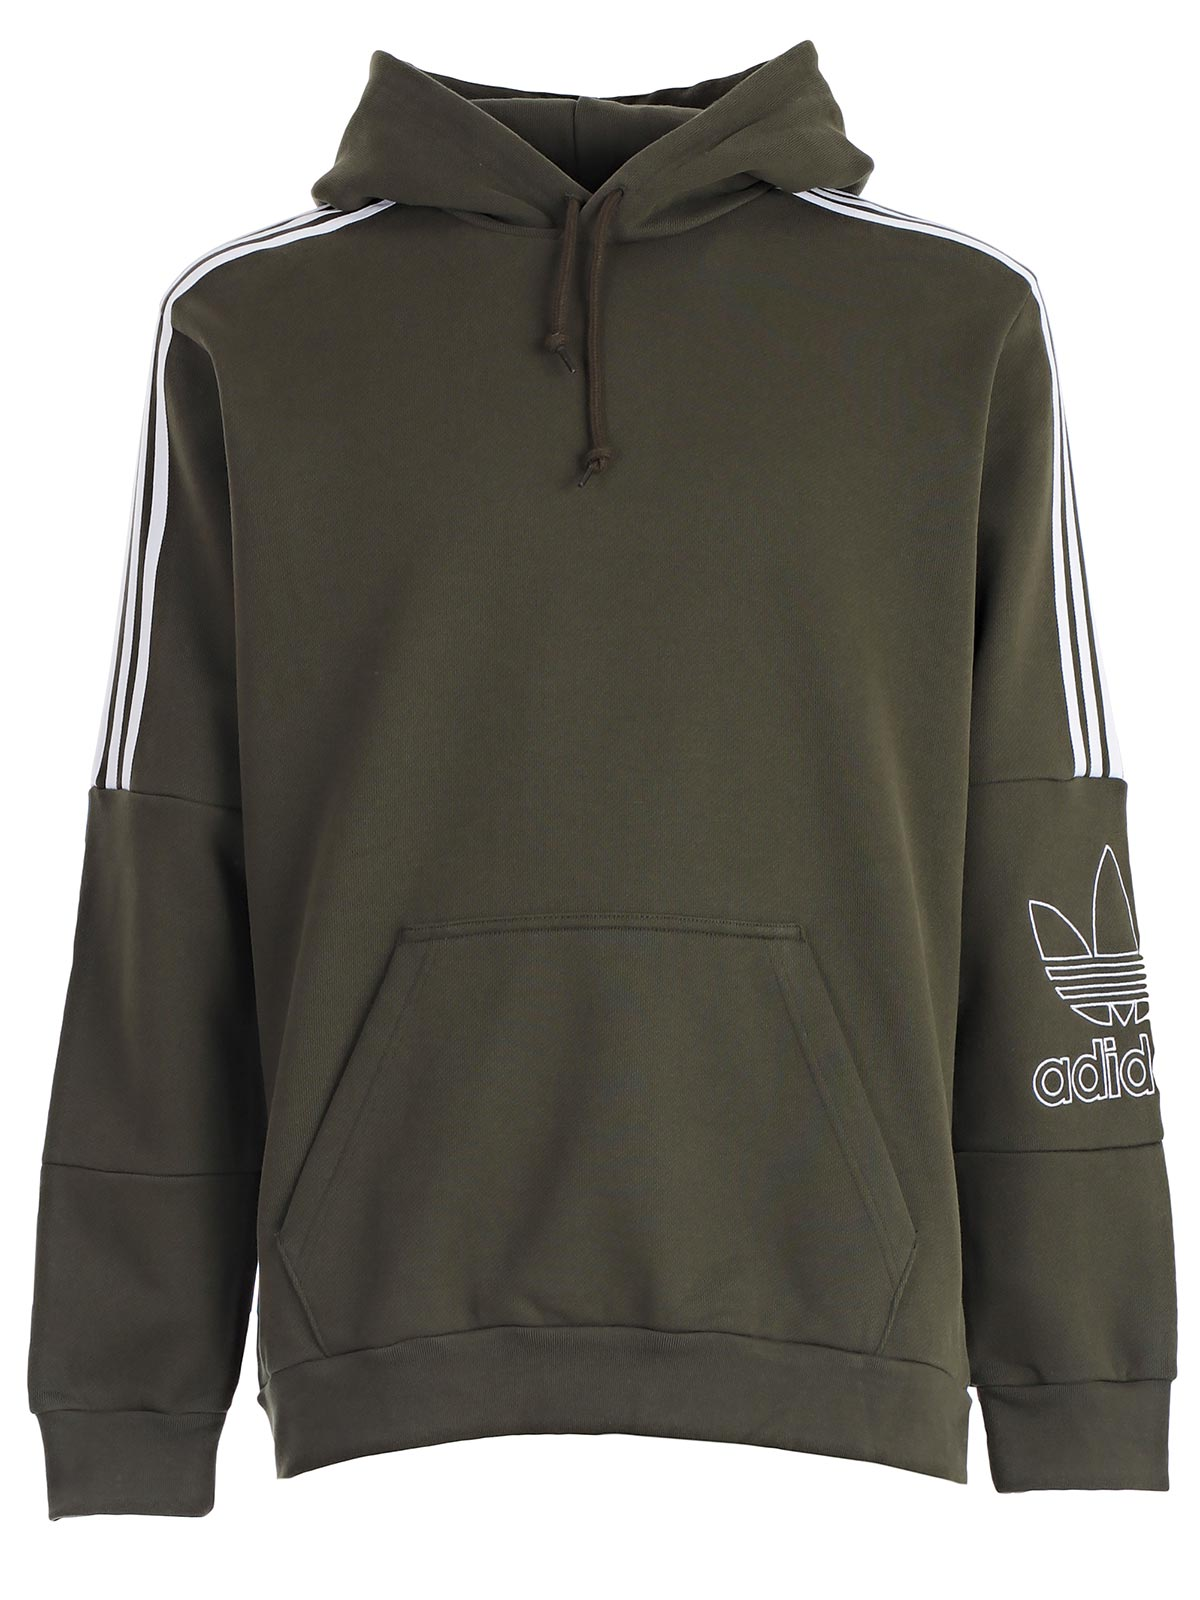 Picture of Adidas Originals Hoodies